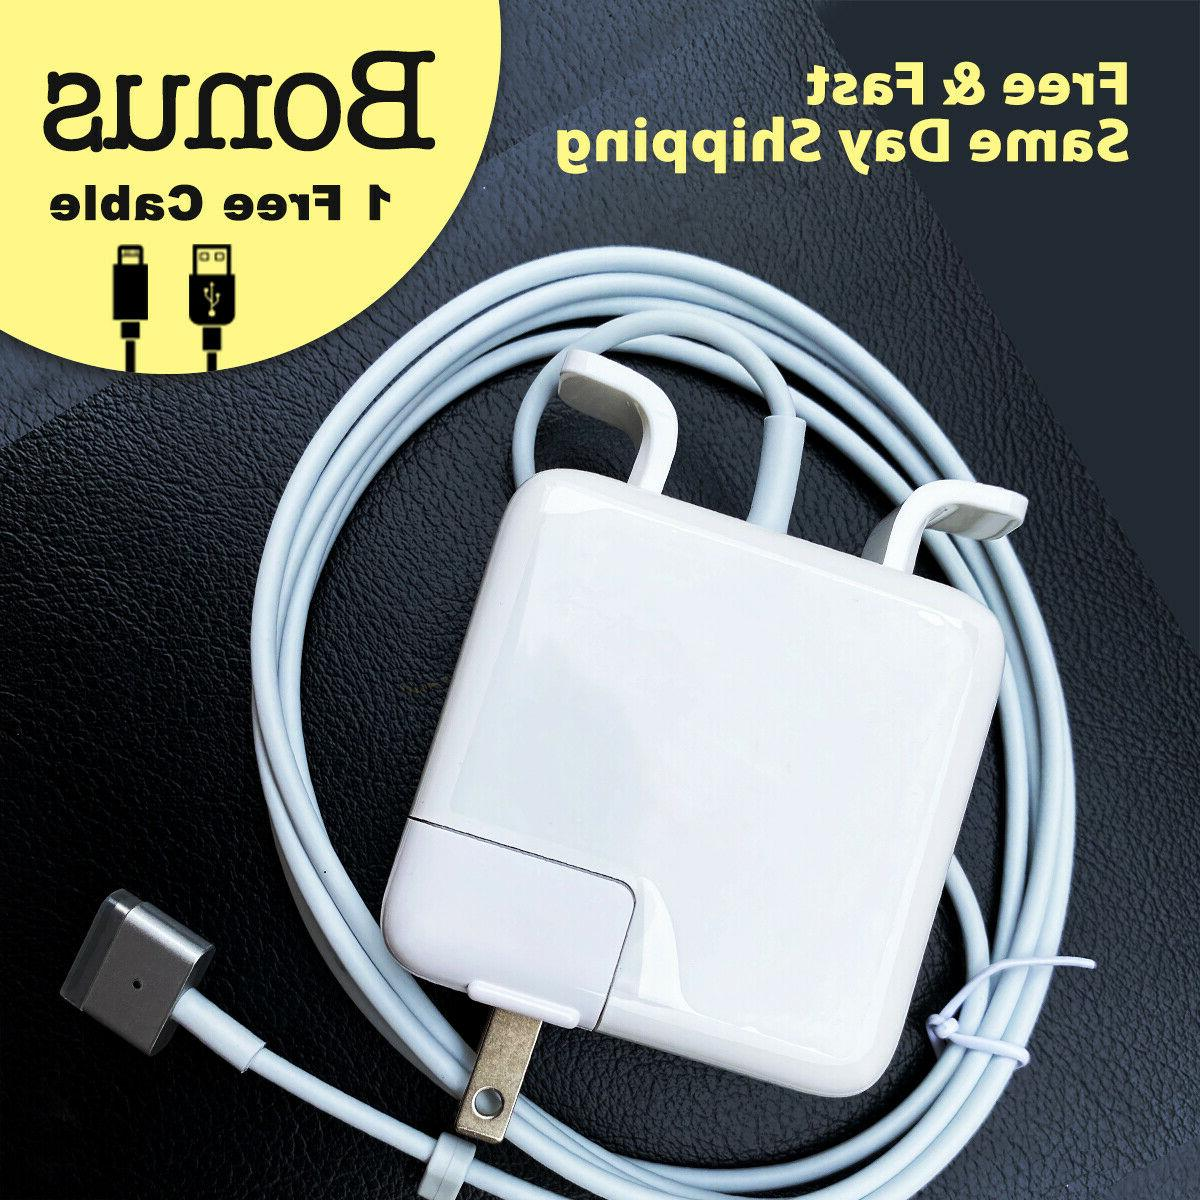 new 45w charger for replacement of macbook